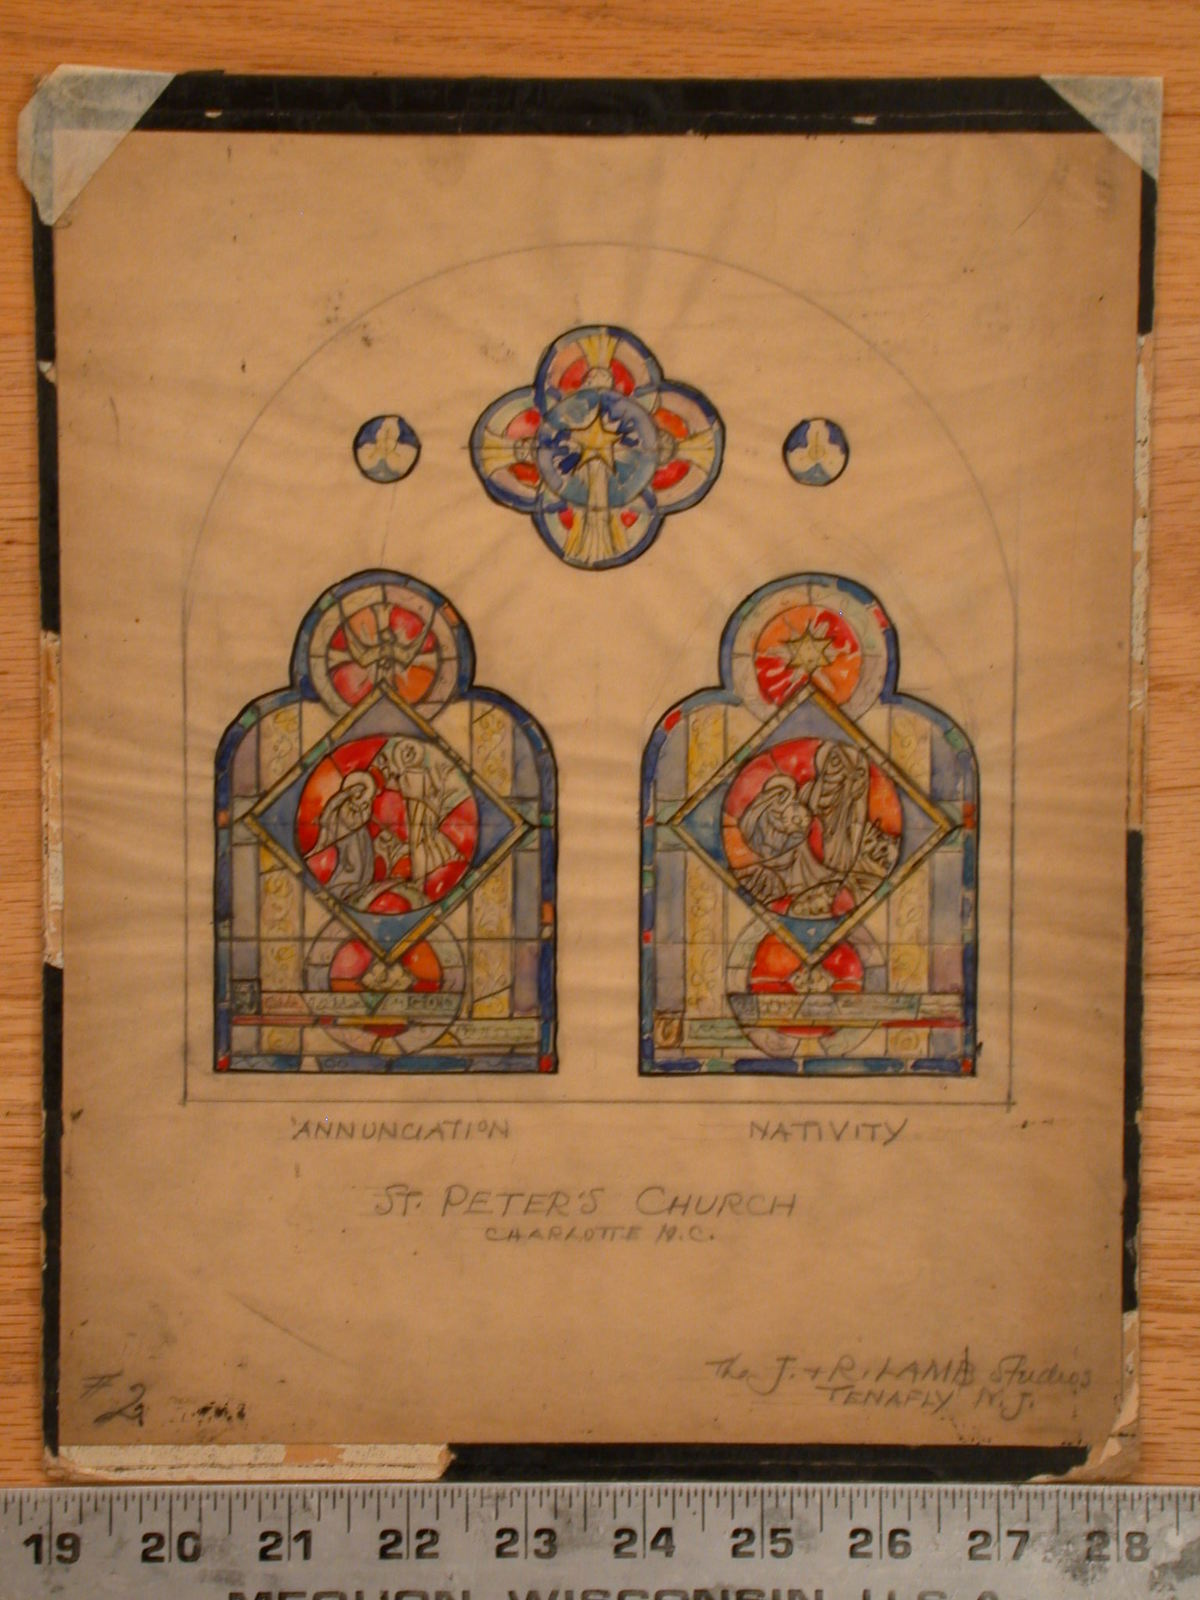 [Design drawing for stained glass window showing Annunciation and Nativity with formal, stylized Gothic figures in a five-window composition to beset in arch or niche for St. Peter's Episcopal Church in Charlotte, North Carolina]